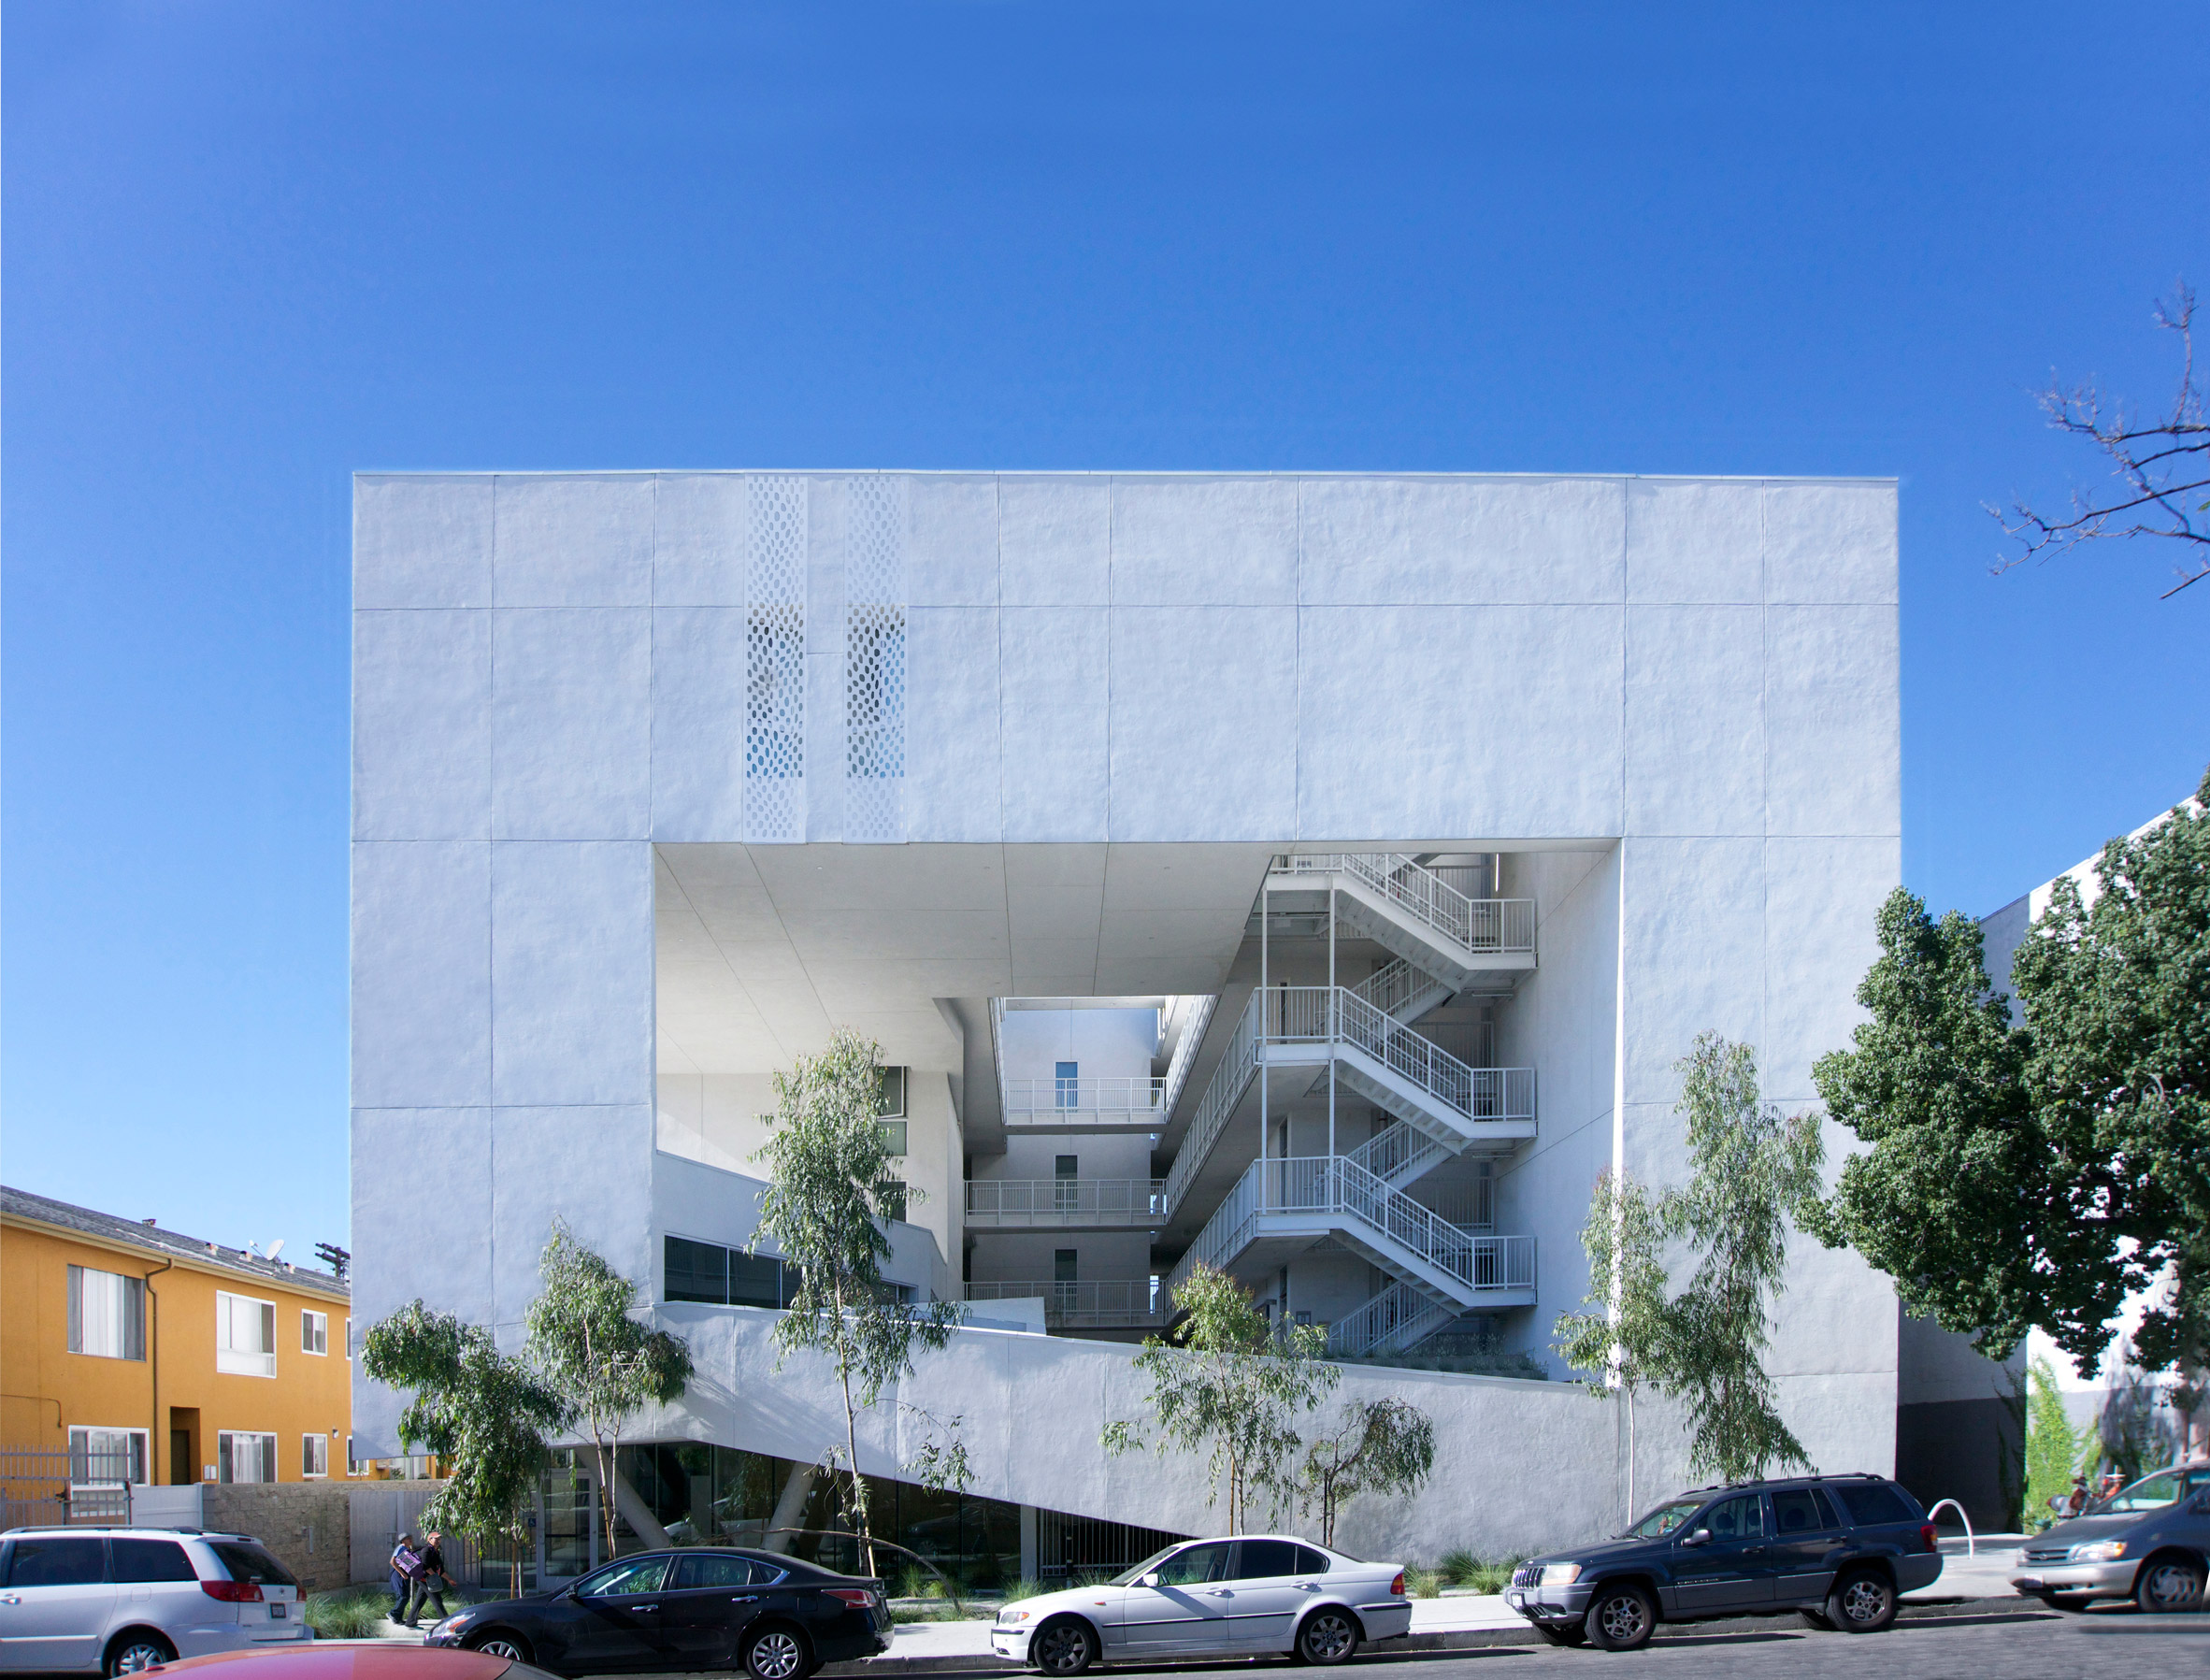 Brooks + Scarpa completes The Six housing for LA's homeless and disabled veterans